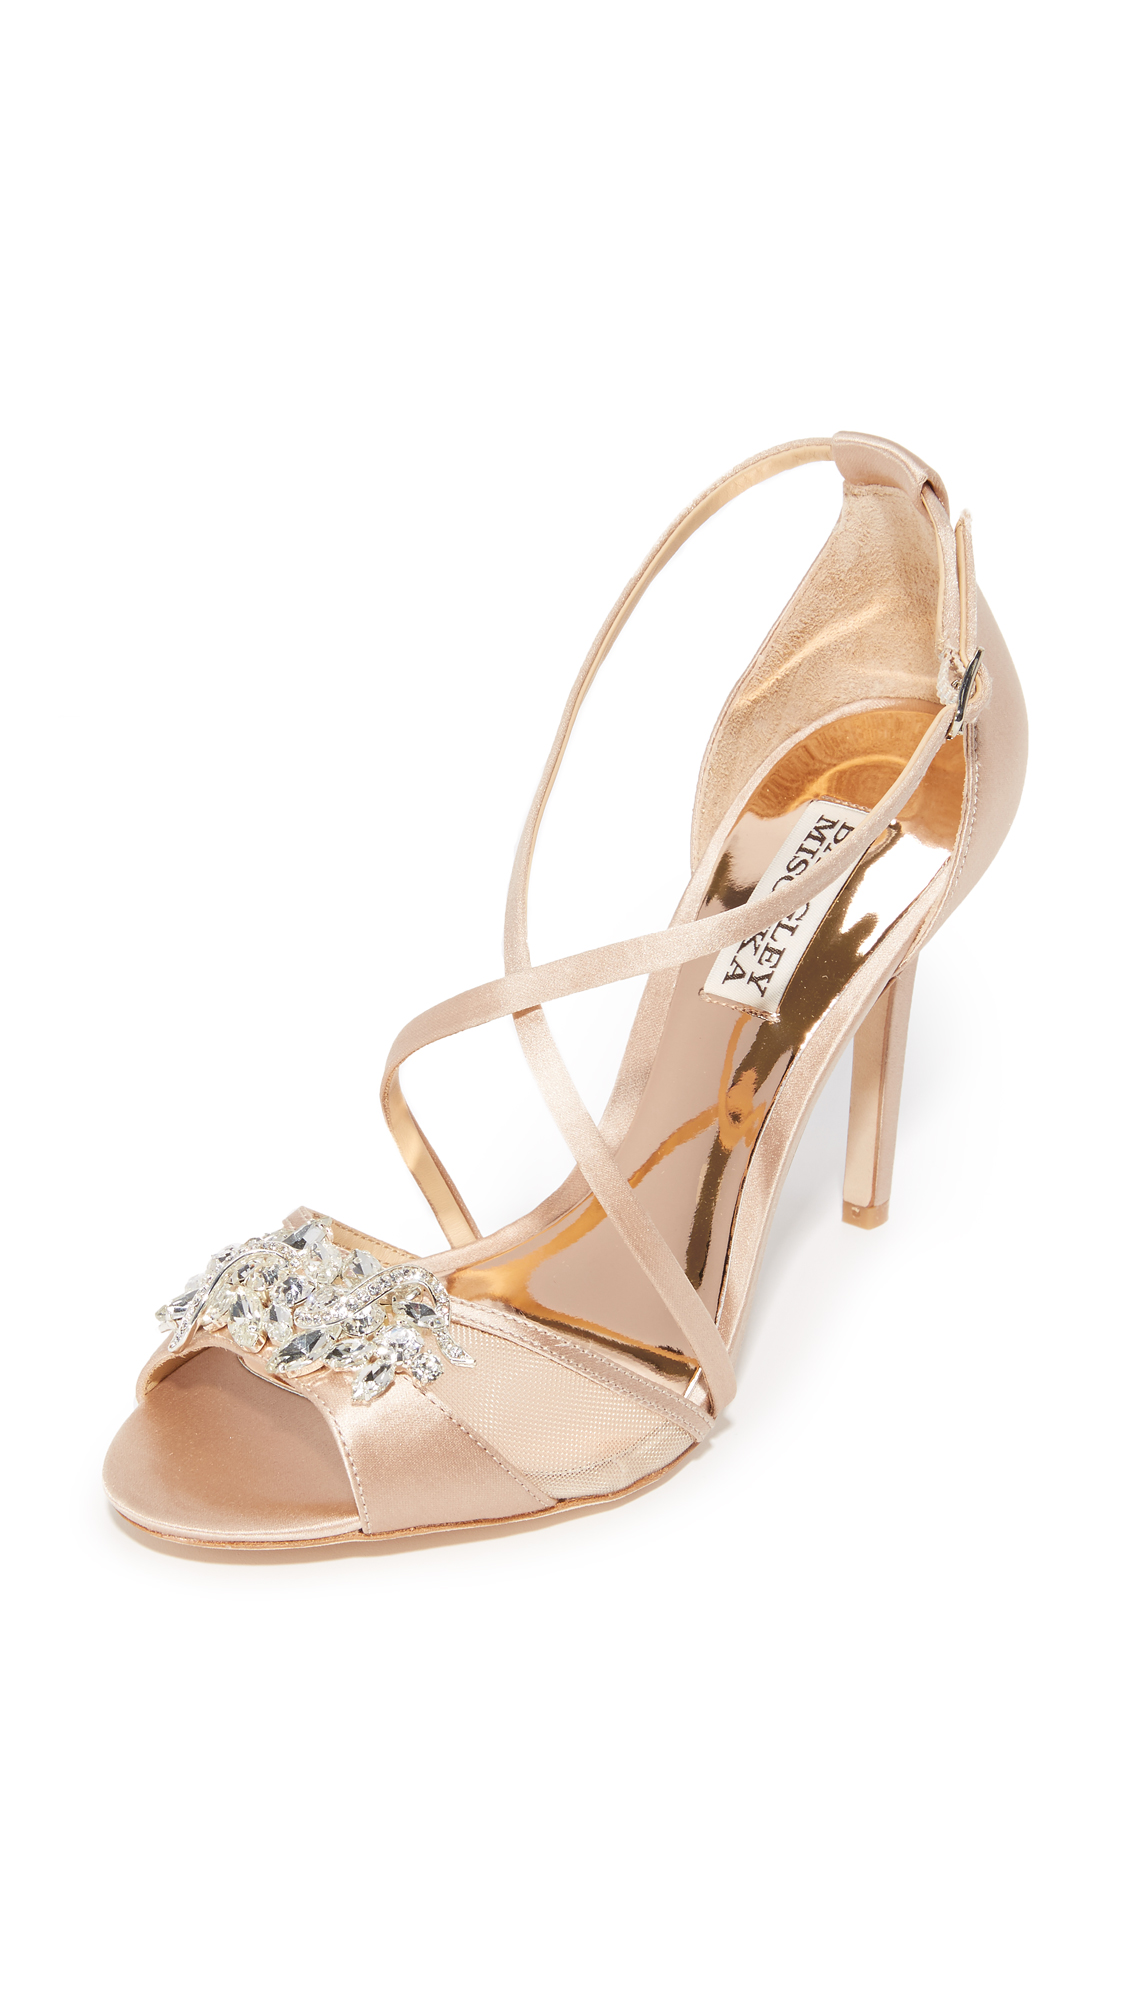 badgley mischka female badgley mischka gala sandals latte